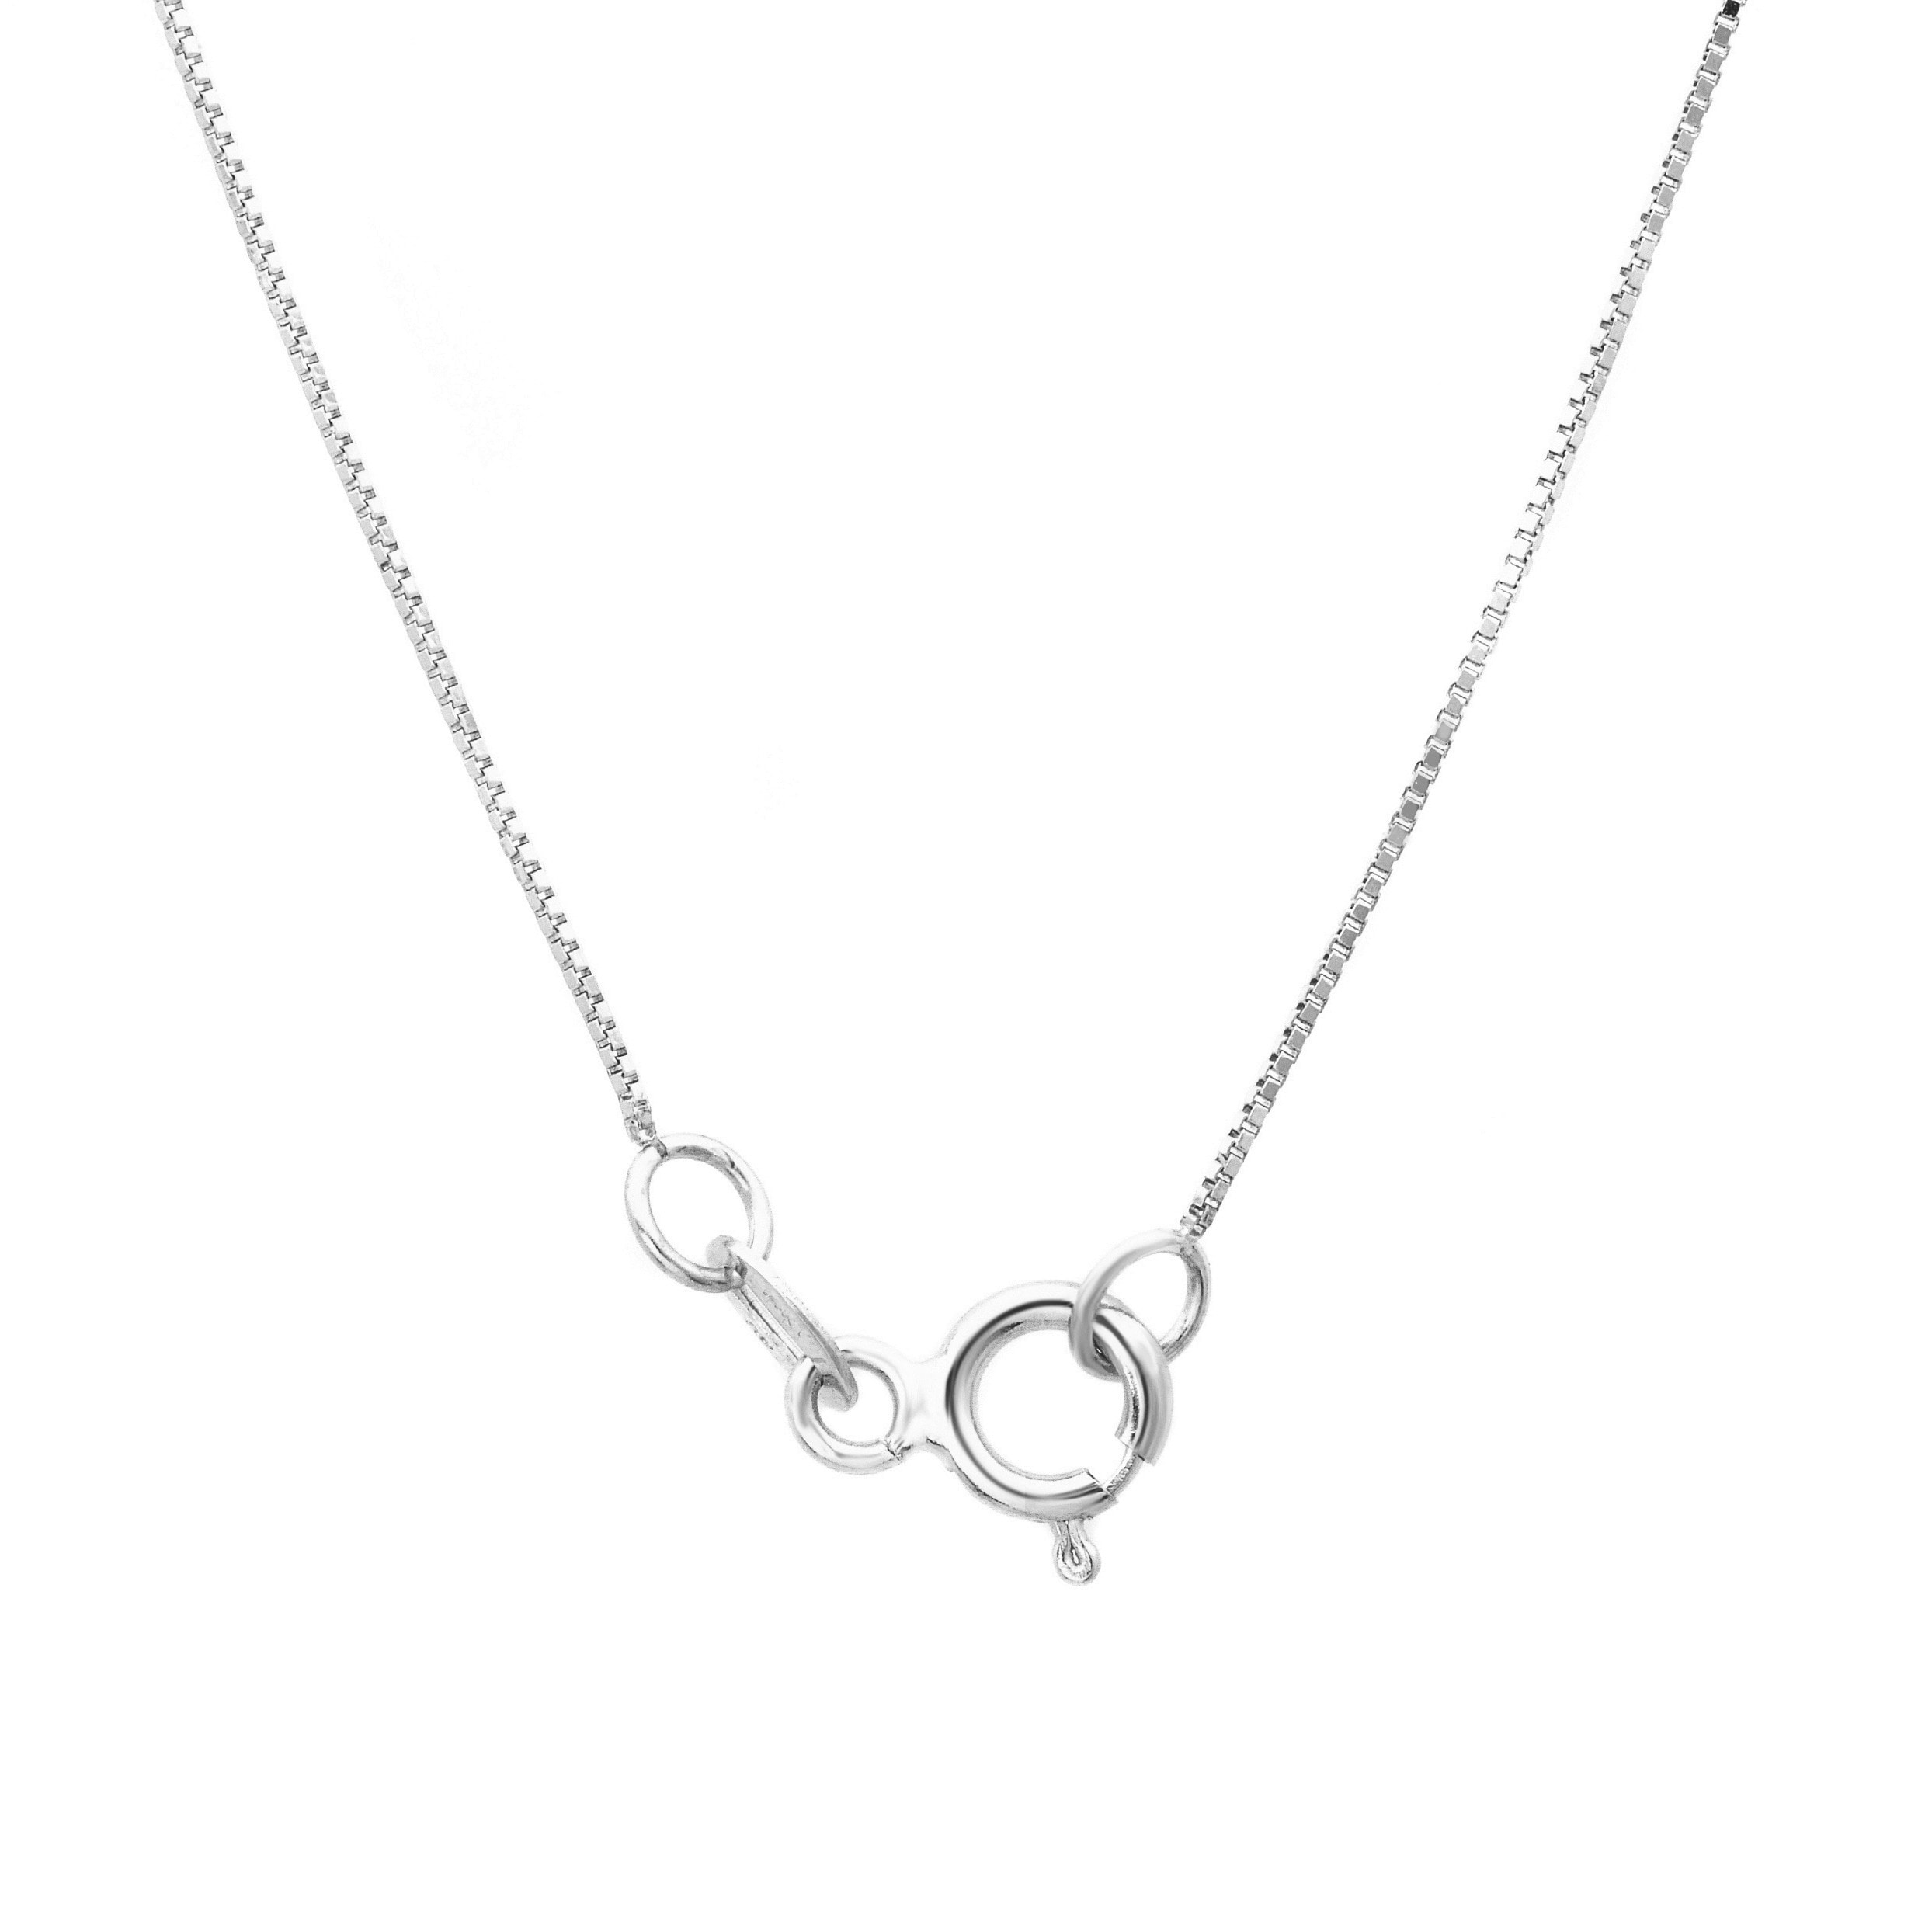 Roberto Martinez Sterling Silver 1 mm Snake Chain Necklace 16-30